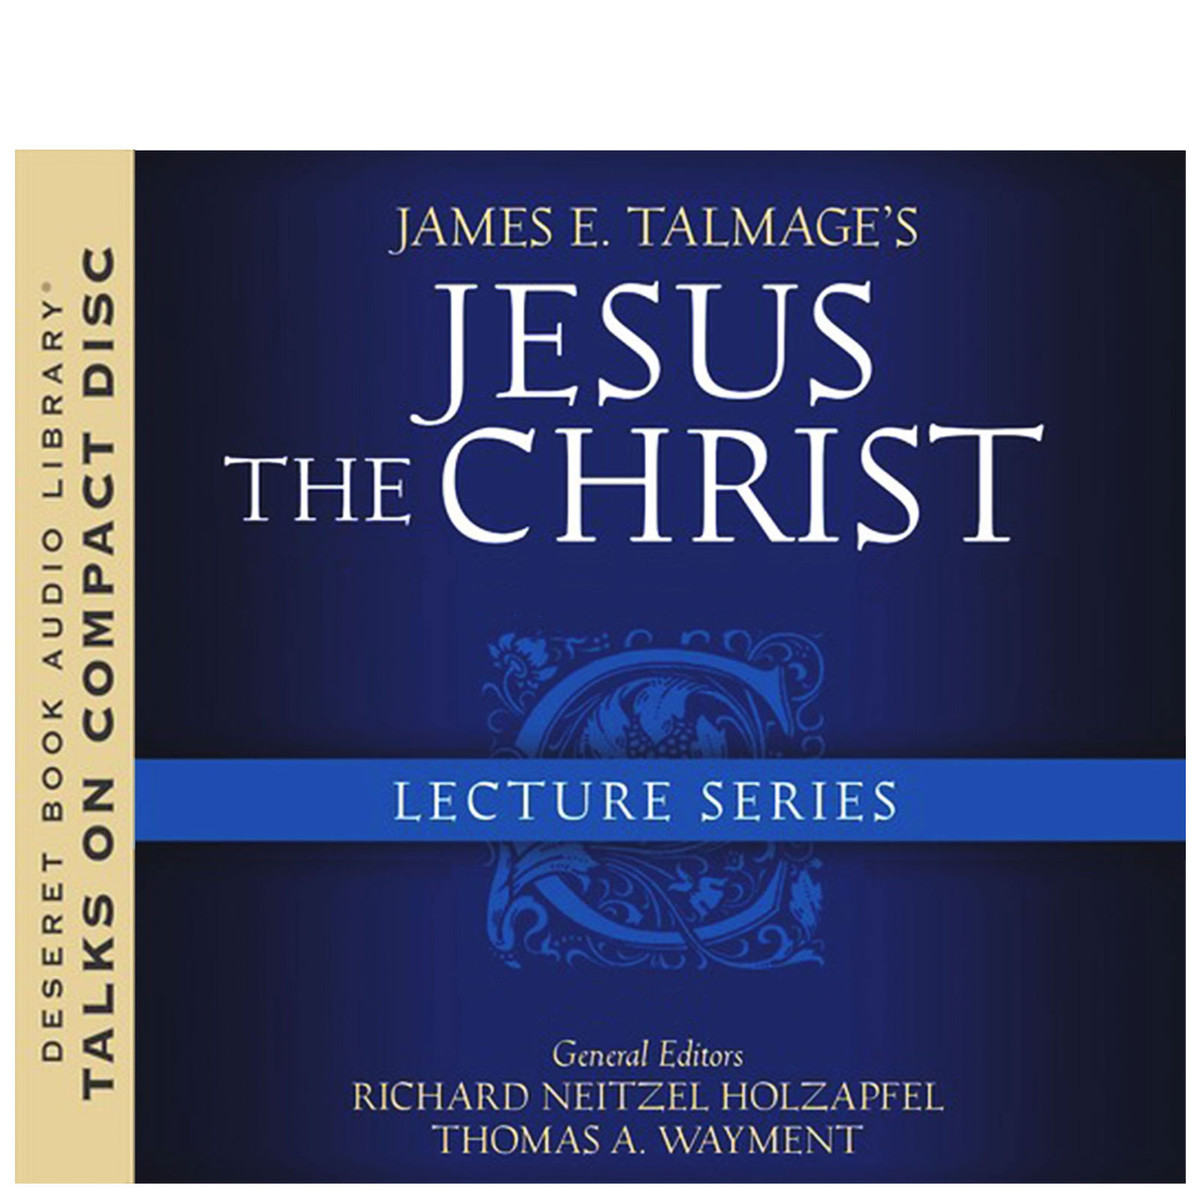 Custitemremovefromsearchapi false jesus the christ lecture series by james e talmage book on cd malvernweather Images